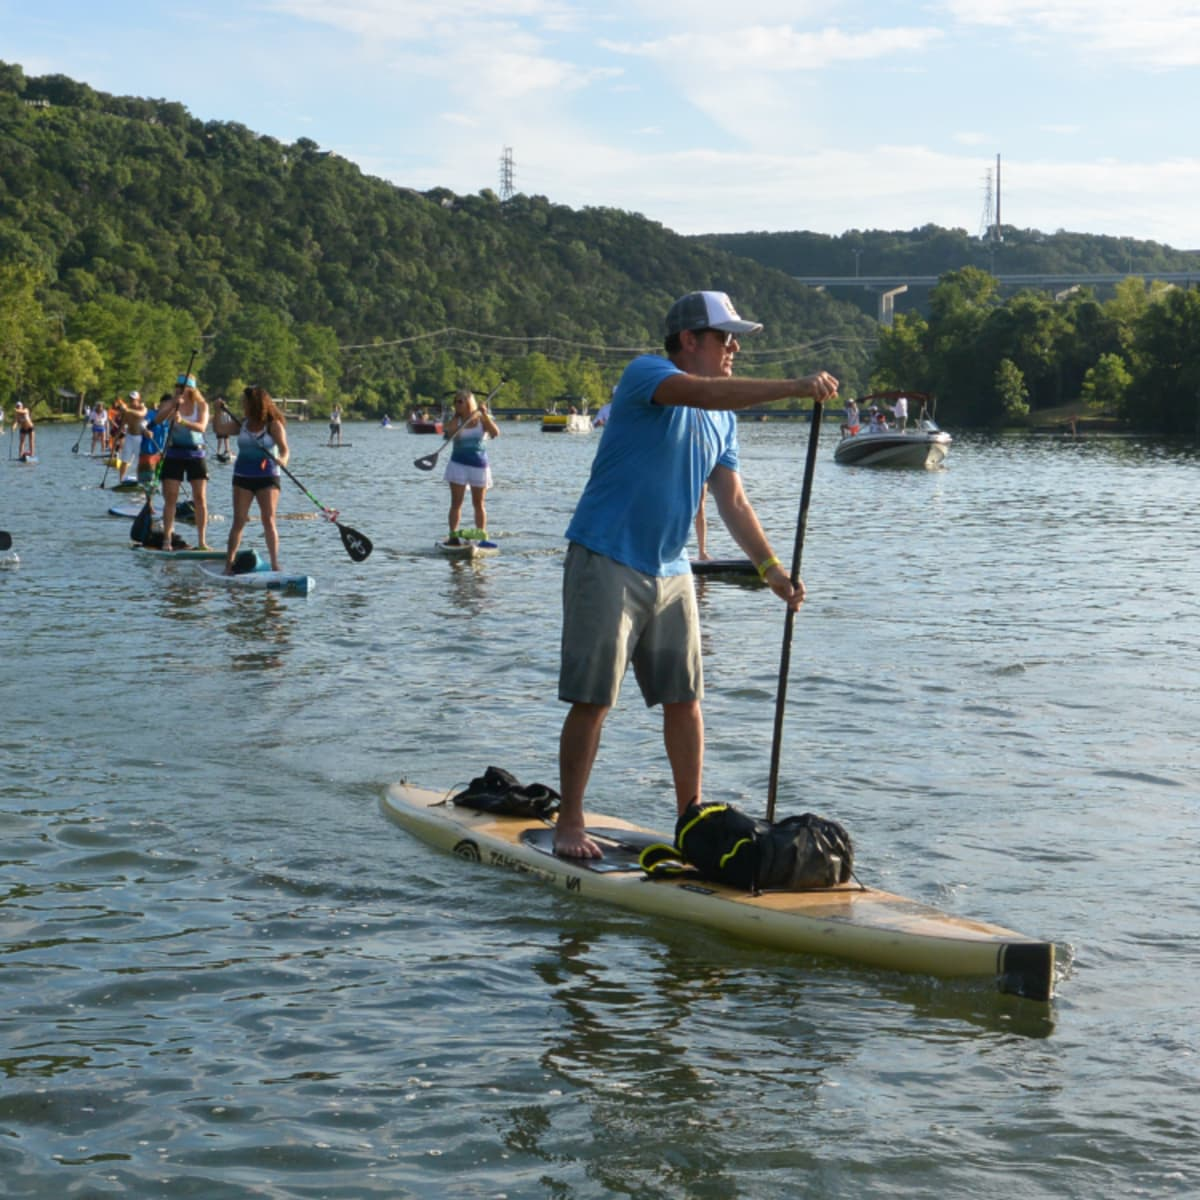 Tyler's Dam That Cancer_Flatwater Foundation_stand up paddle boarding_Lake Austin_JB Hager_2015